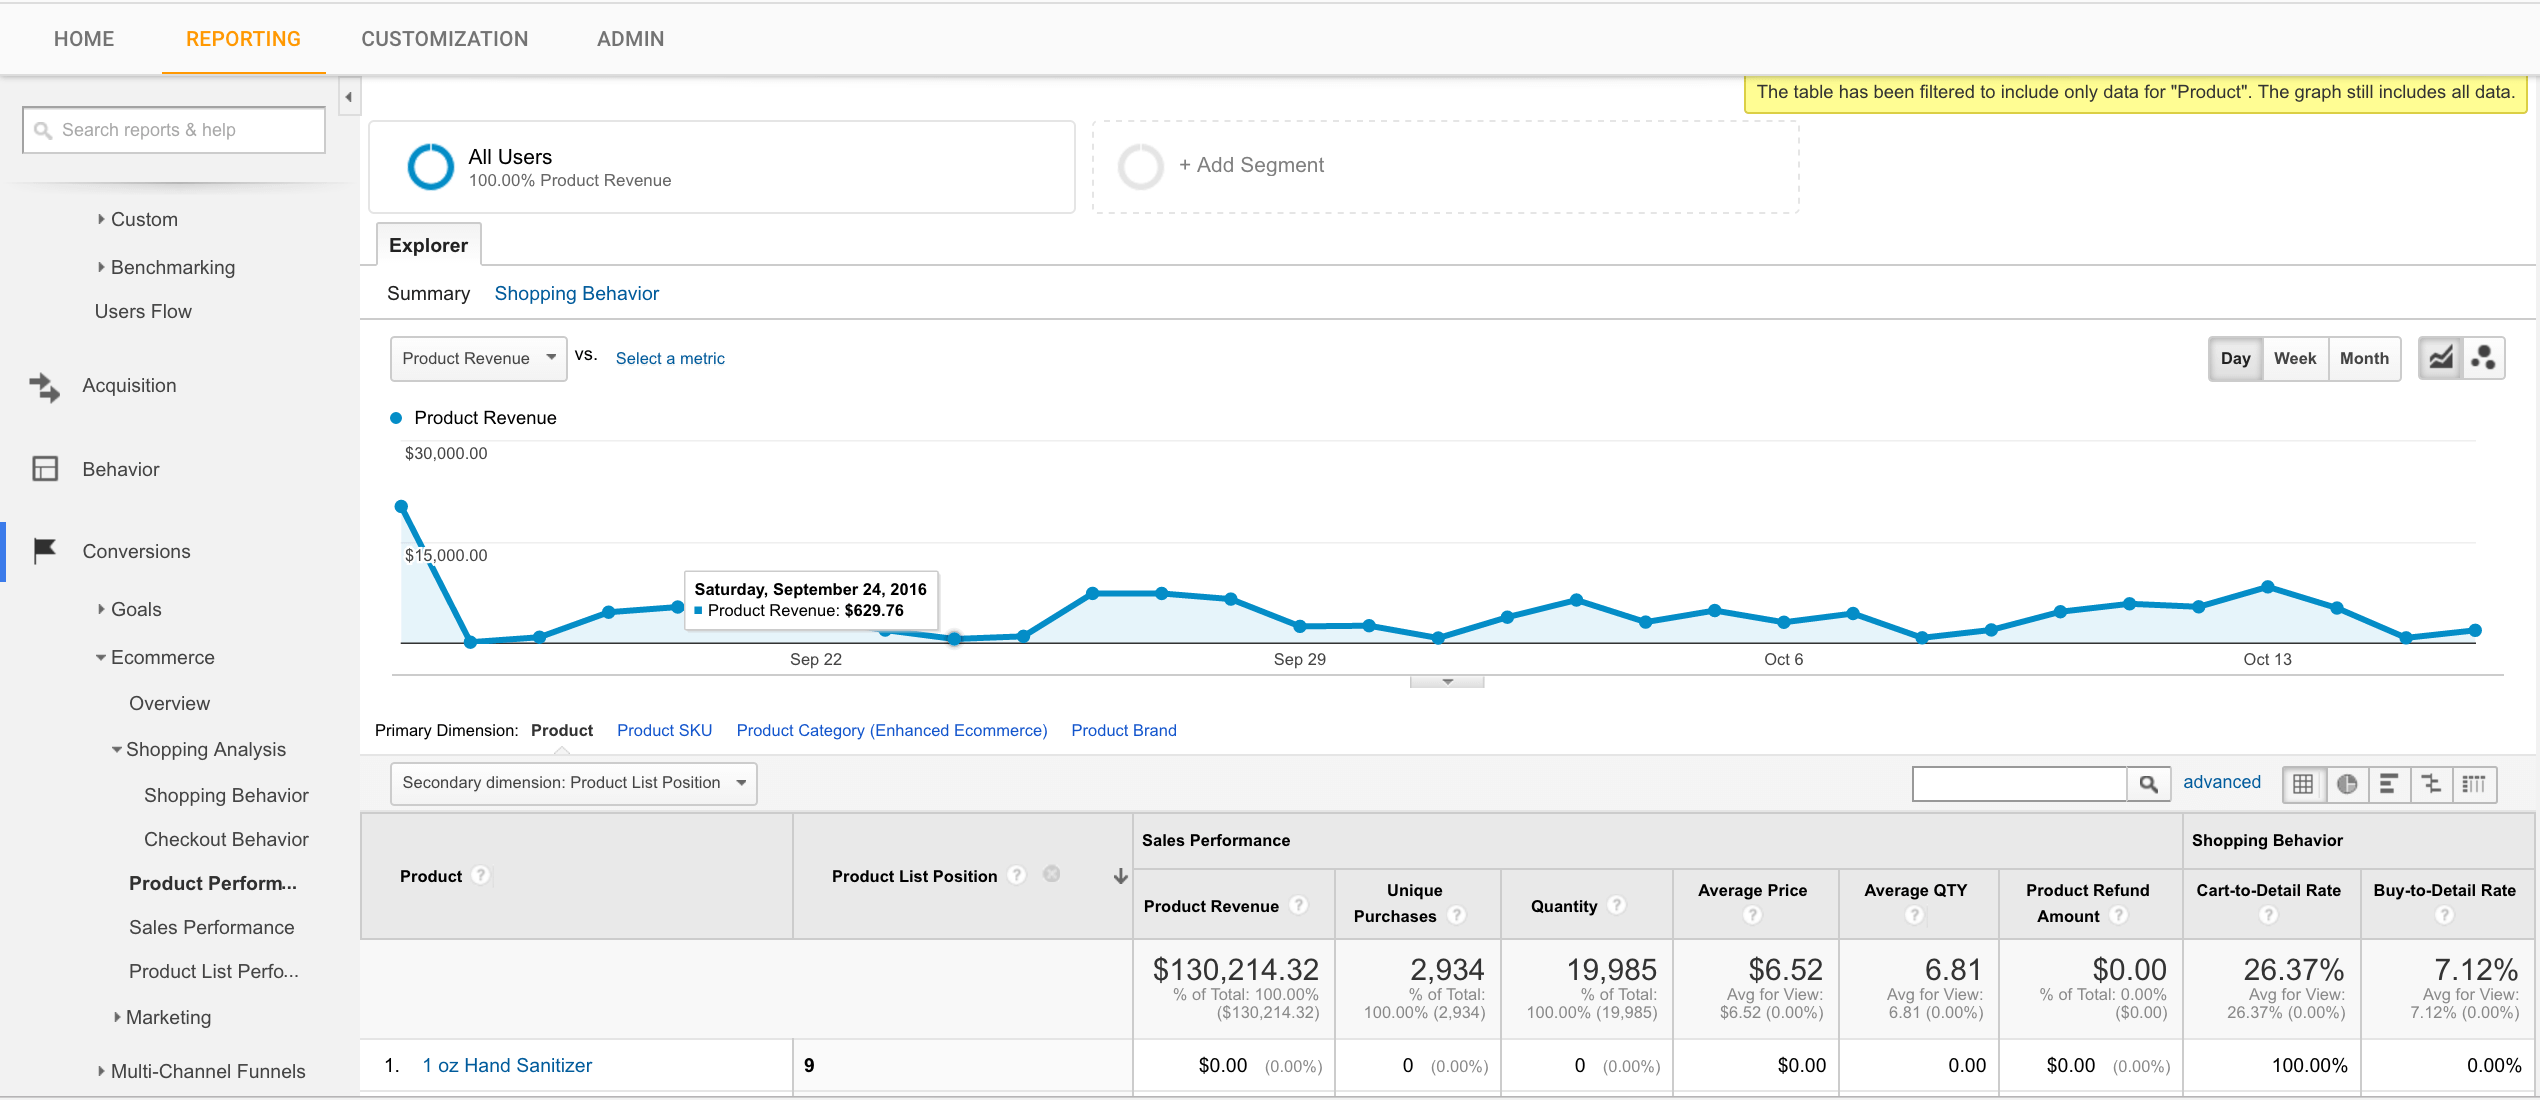 how is showing up if you have enhance ecommerce in your online shop with google analytics